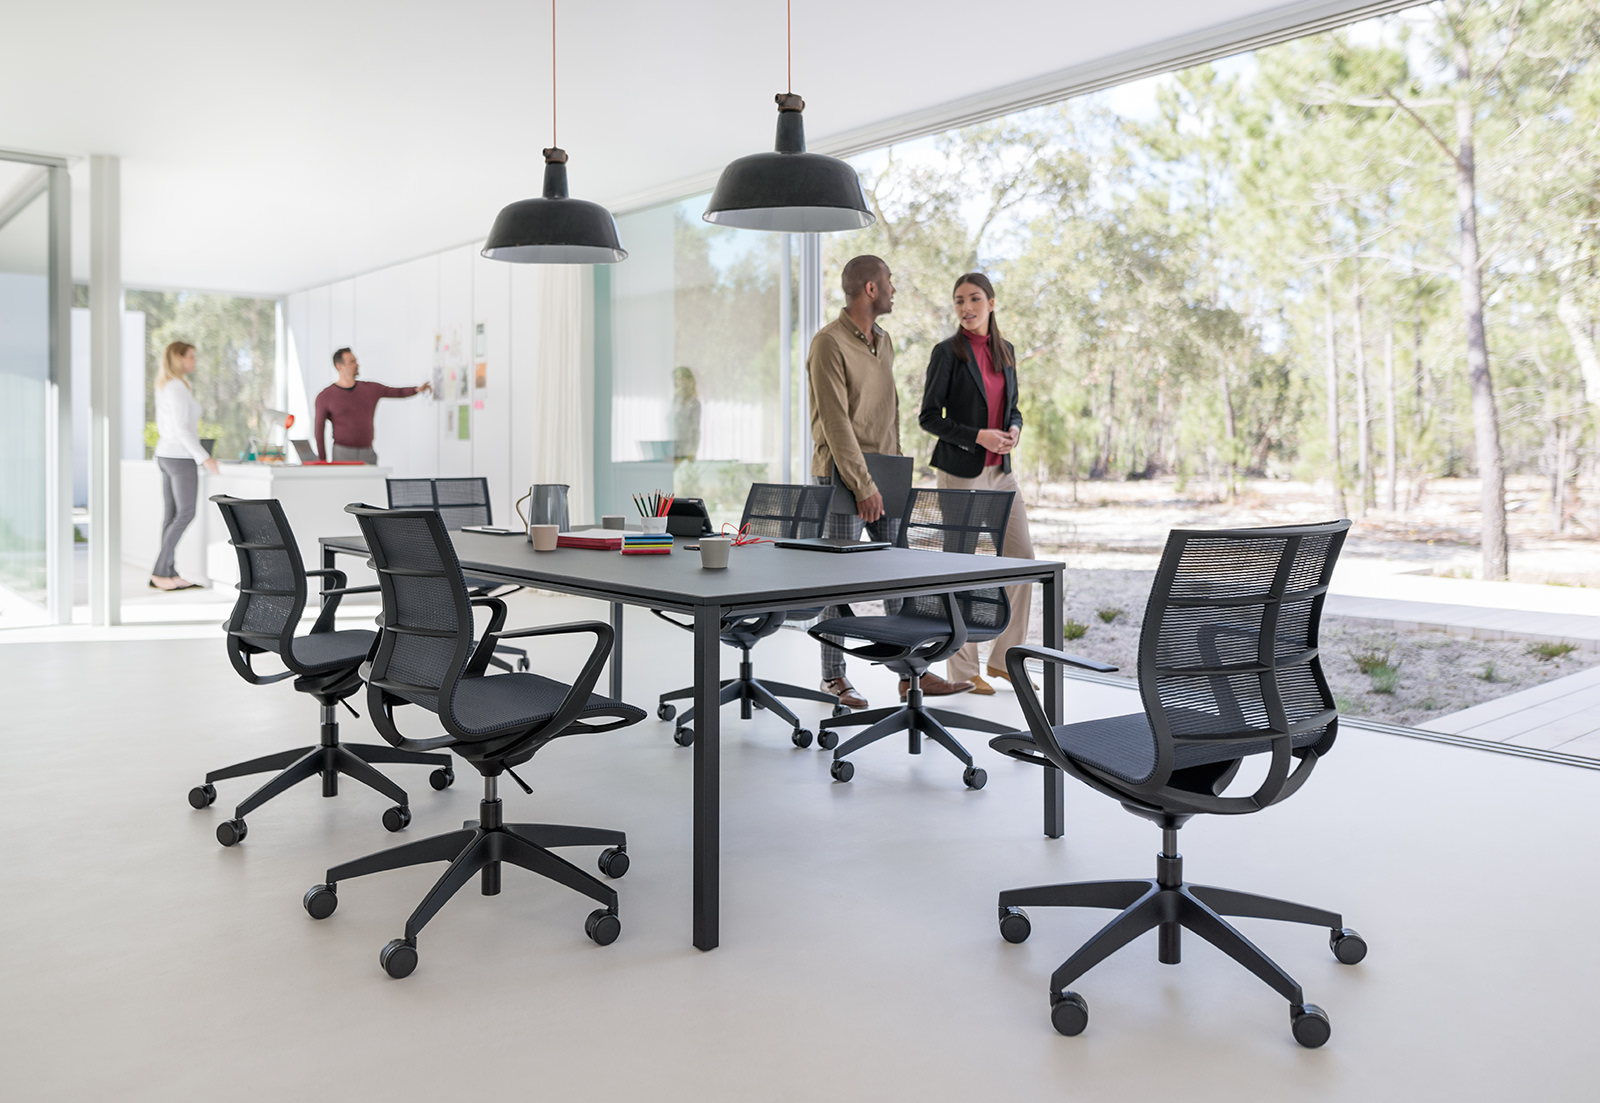 se-joy-home-office-chair-20.jpg